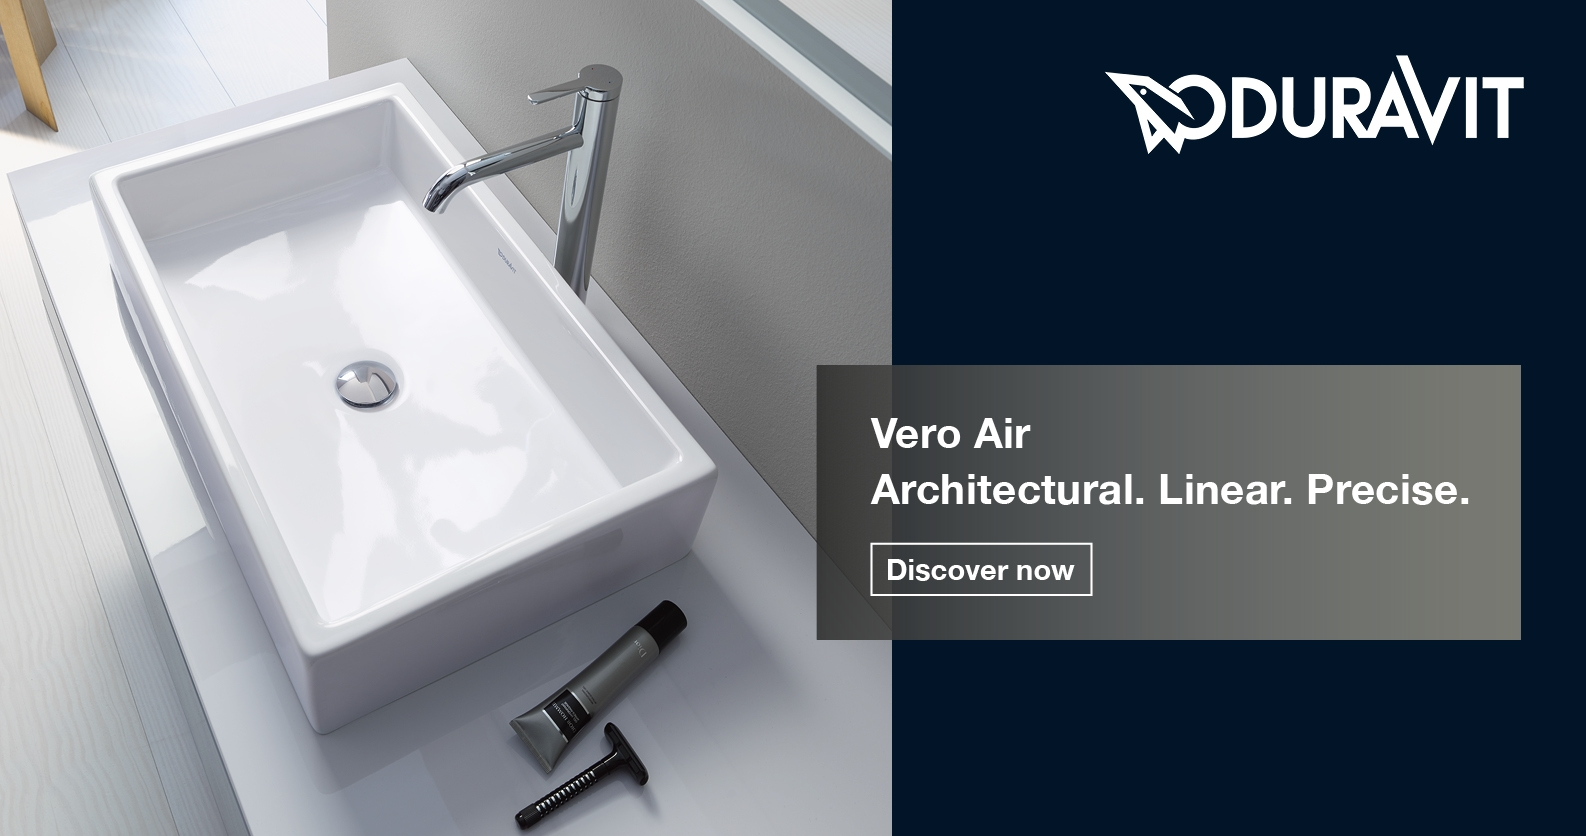 Discover the series DURAVIT Vero Air at xTWOstore